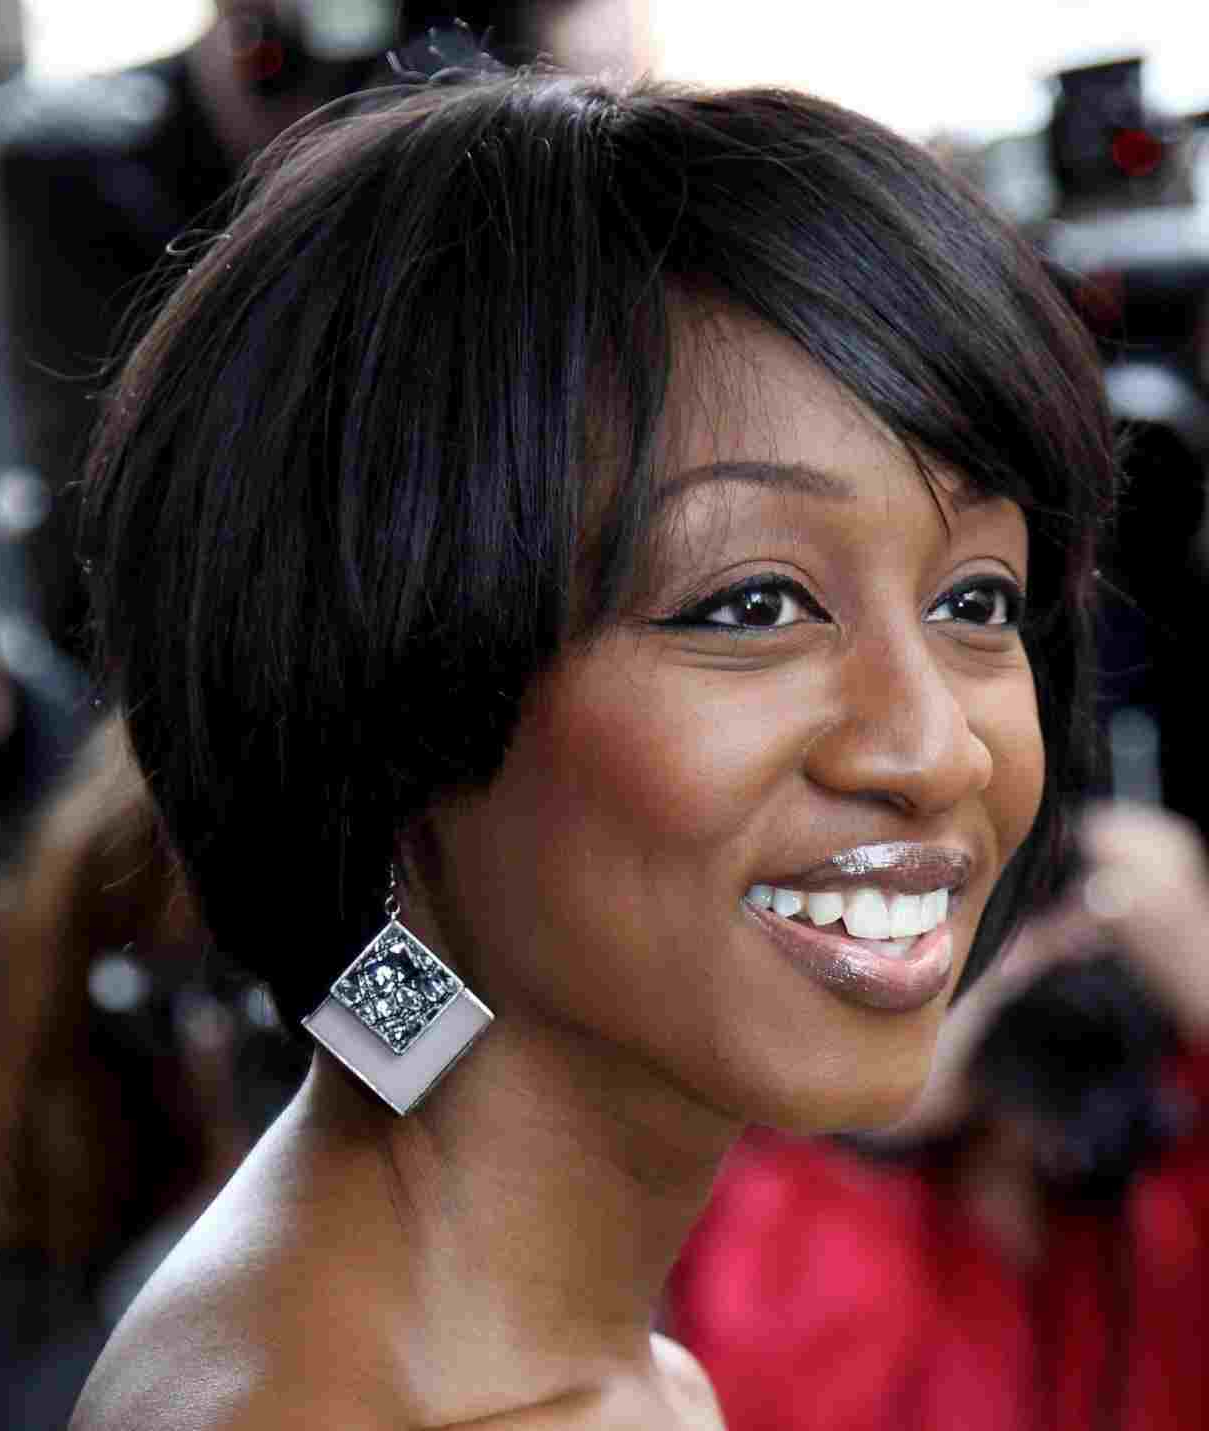 Faces-African-American-Bob-Hairstyles-Razanflightcomrhrazanflightcom inside Short Hairstyles For African American Women With Round Faces